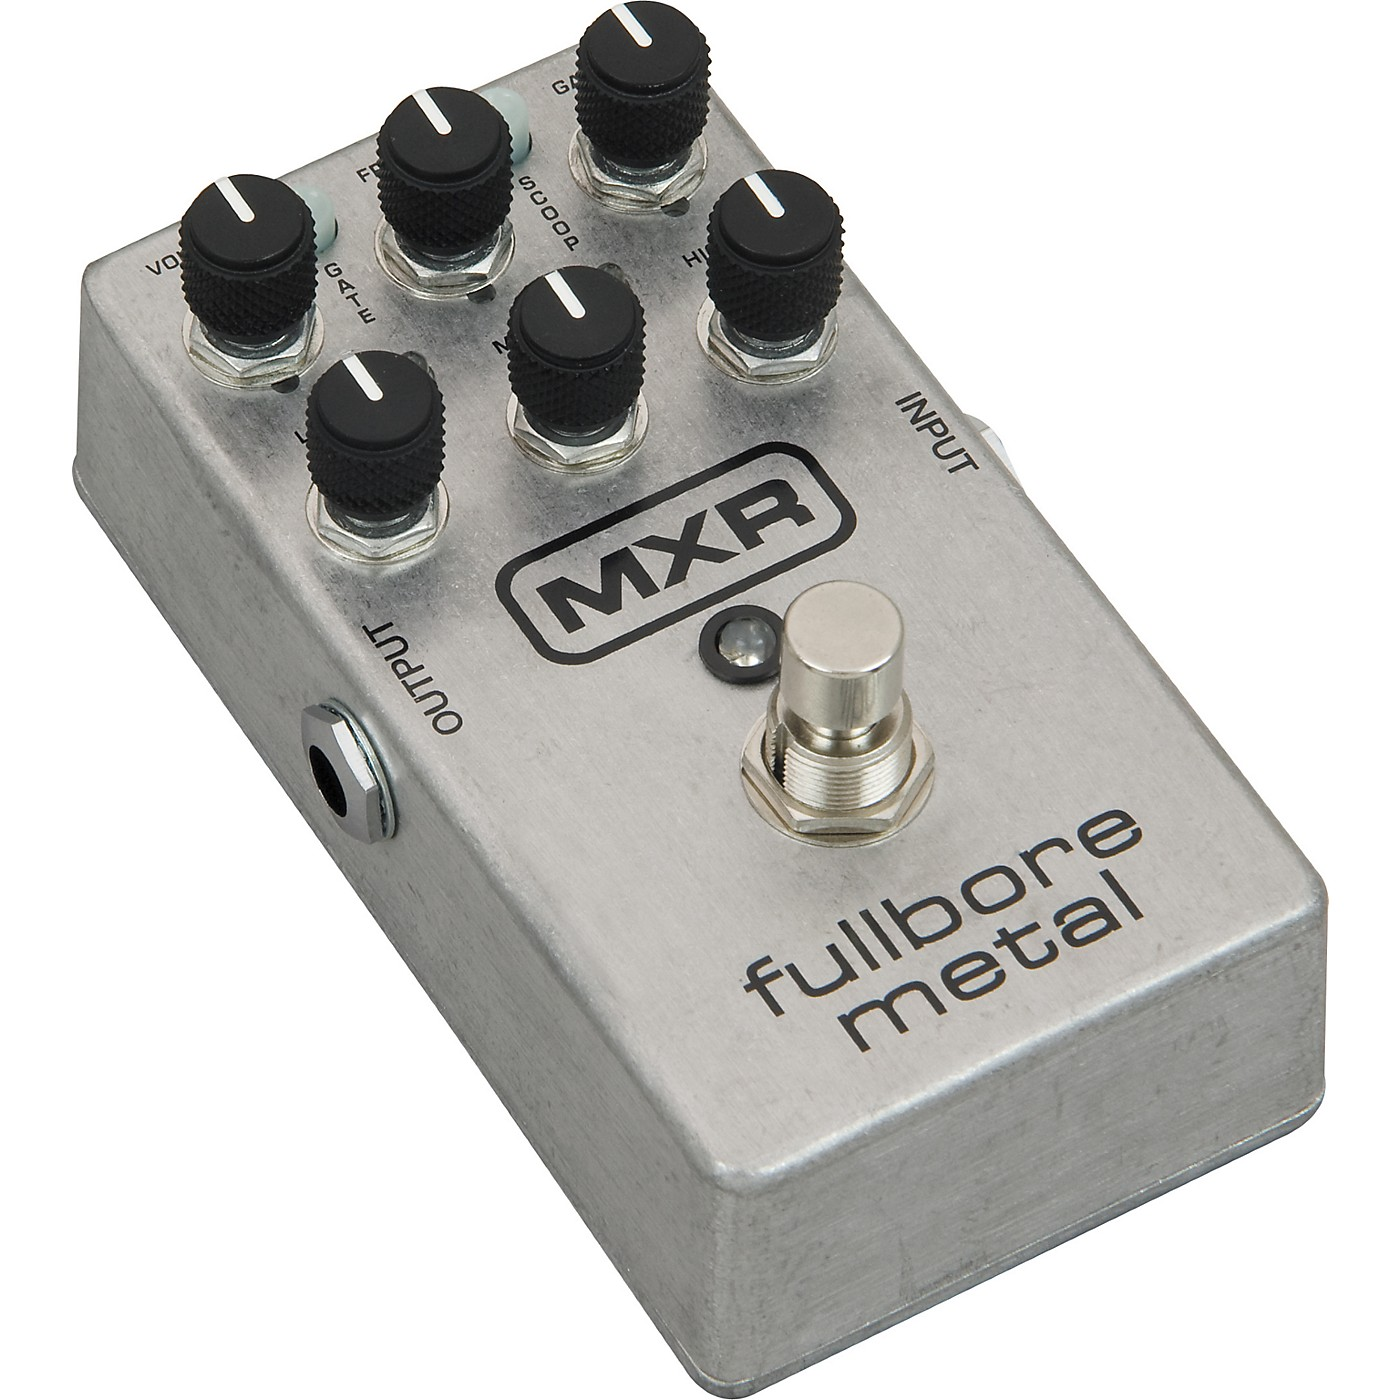 MXR M116 Fullbore Metal Distortion Guitar Effects Pedal thumbnail